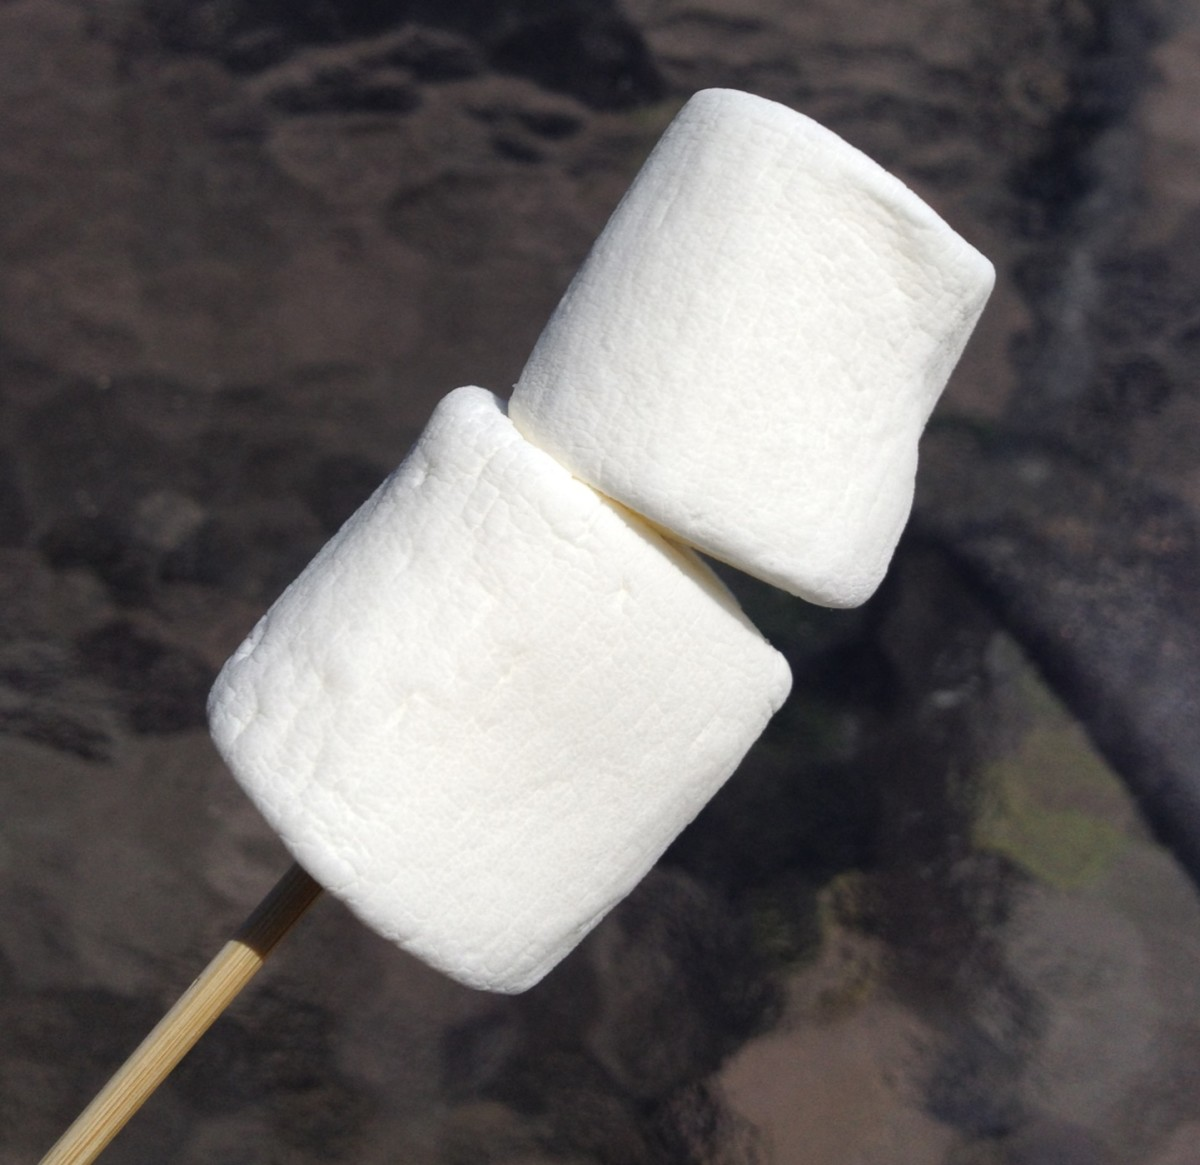 Marshmallows are an important part of s'mores.